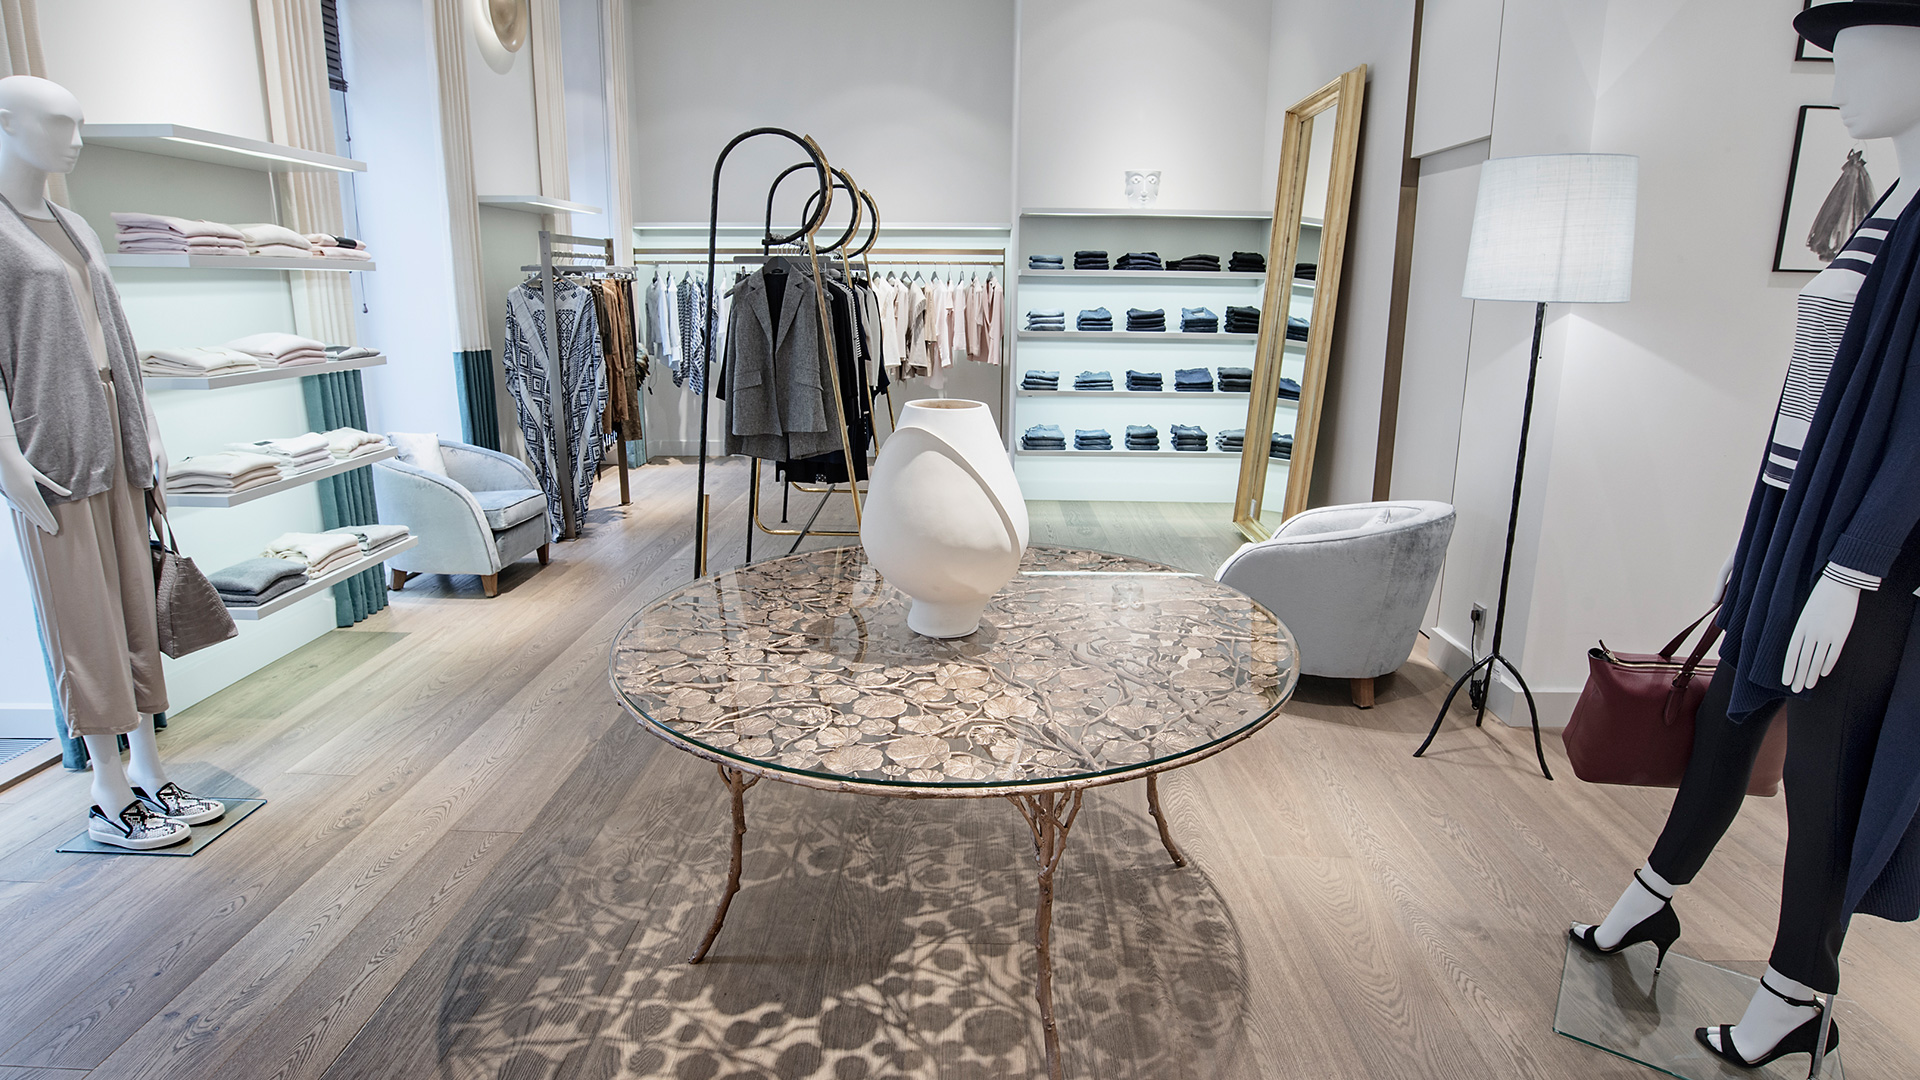 Designer In München luxury shopping in munich apropos the concept store